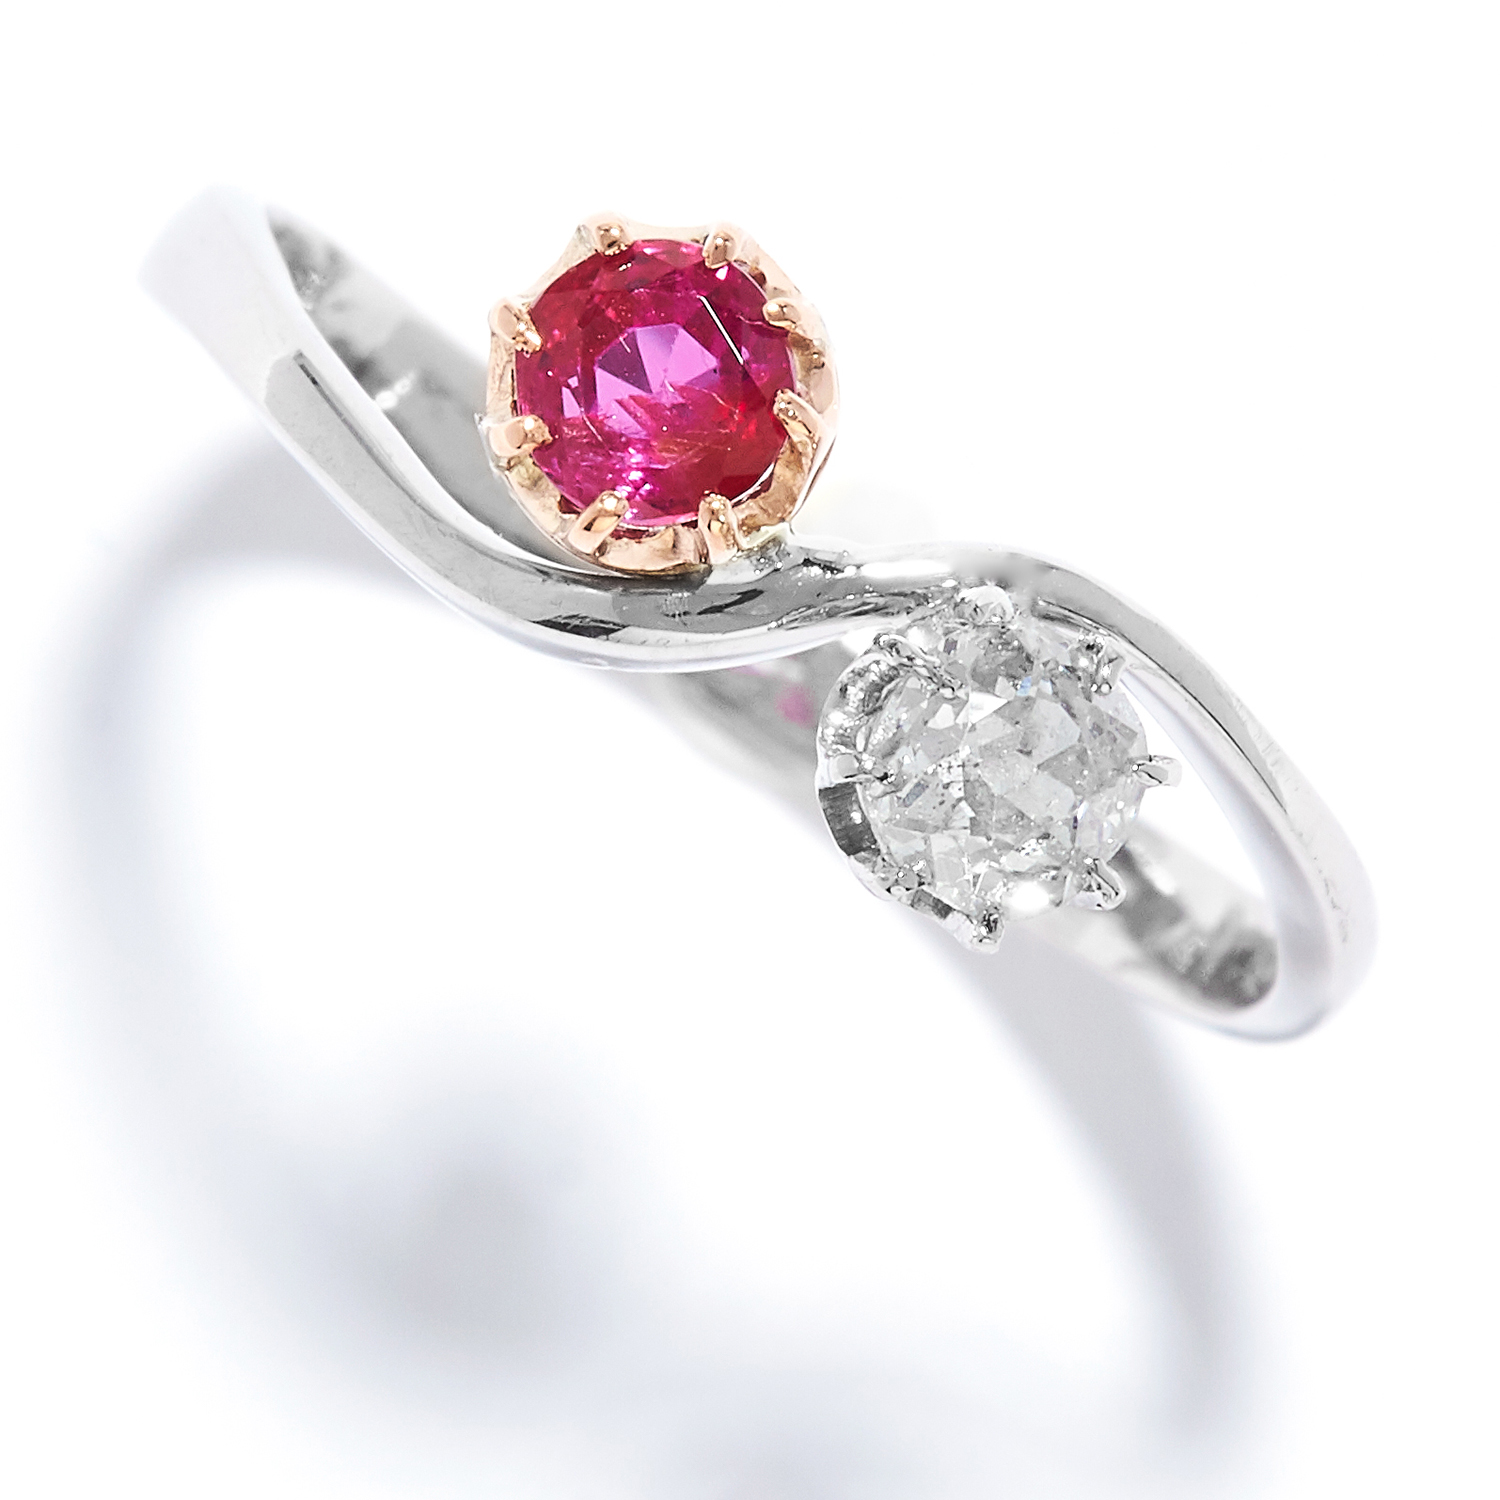 RUBY AND DIAMOND TOI ET MOI RING set with a round cut ruby and diamond, size P / 7.5, 3.0g.